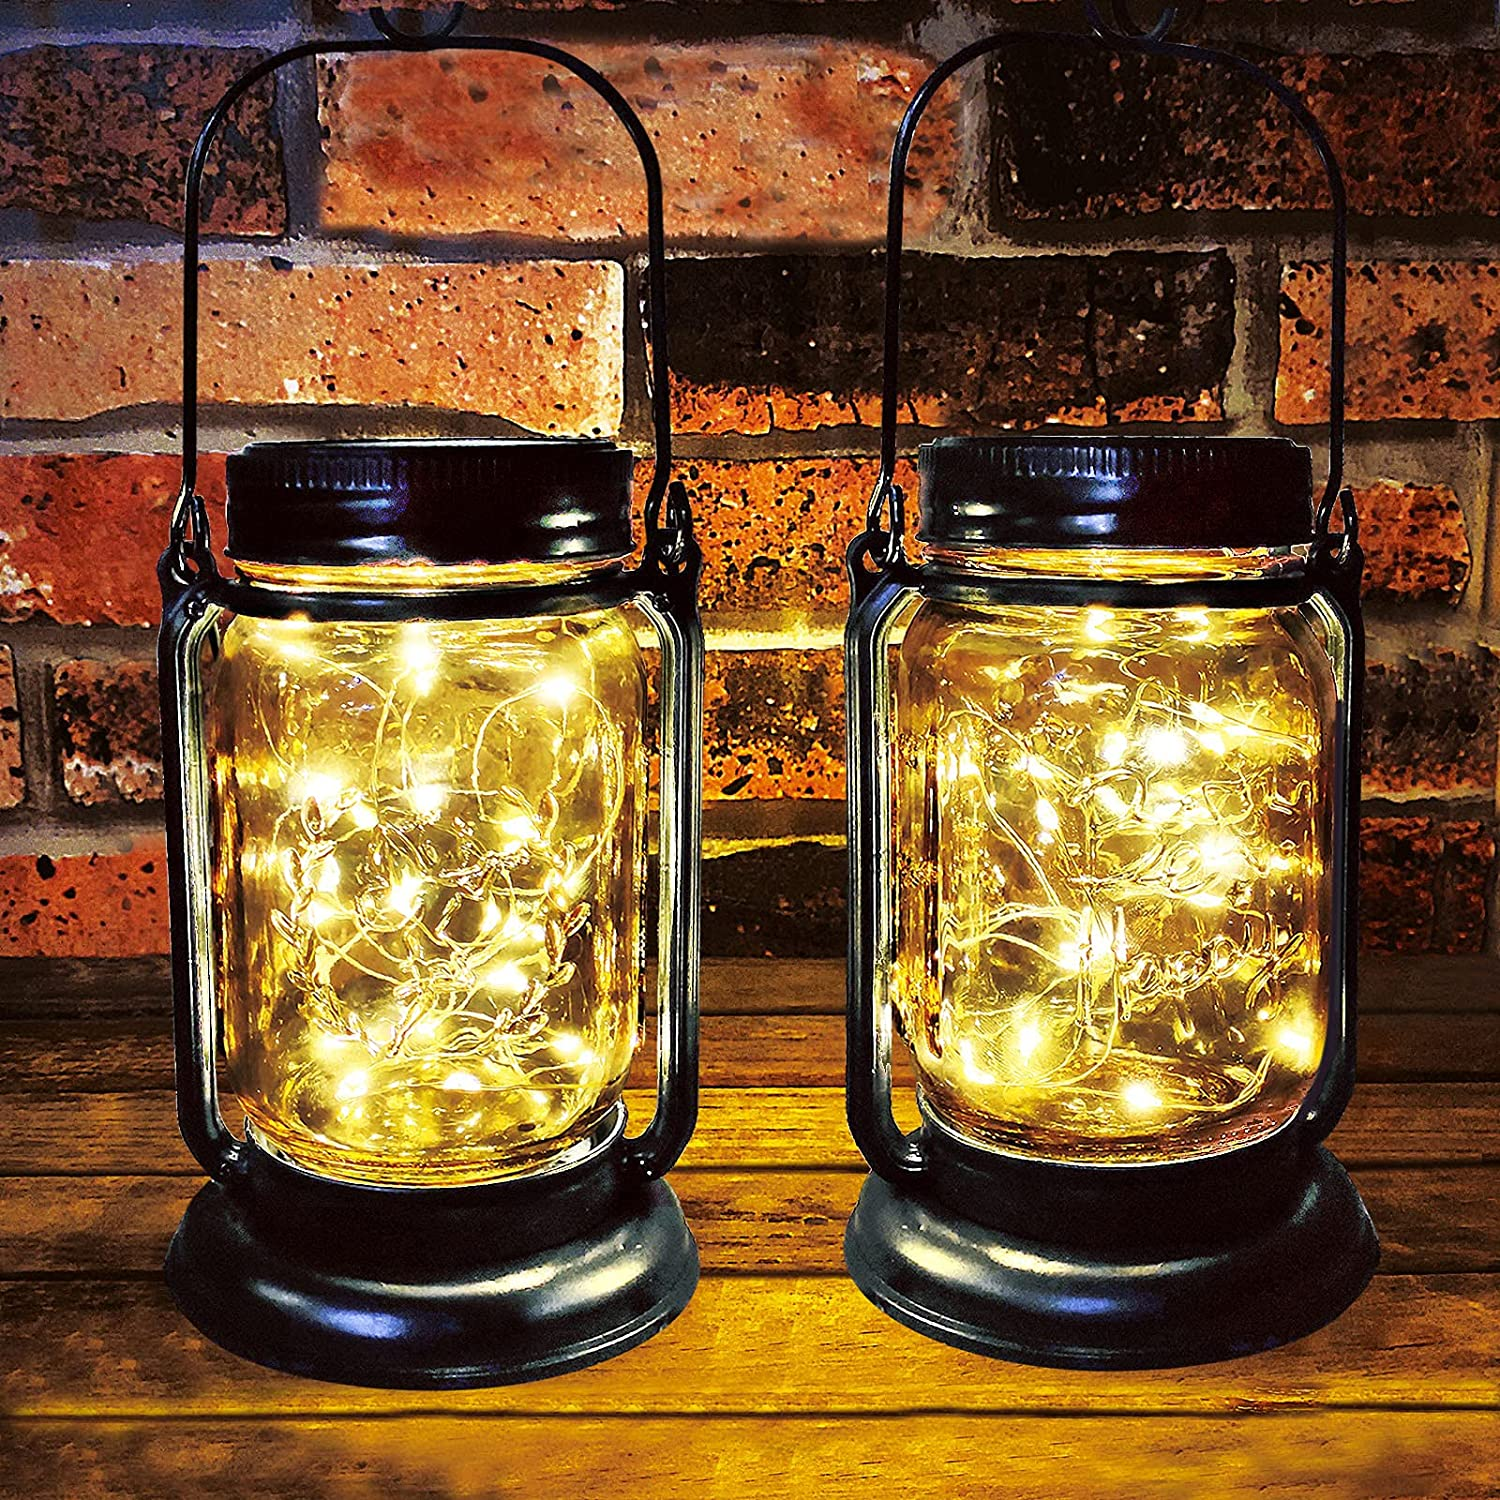 Outdoor Solar Lanterns,Hanging Lights Outdoor,Garden Decorations Patio Decorations Solar Powered Waterproof 30 LED Glass Jar Lights for Party, Courtyard, Patio,Tabletop Decorations (2Pack): Home Improvement